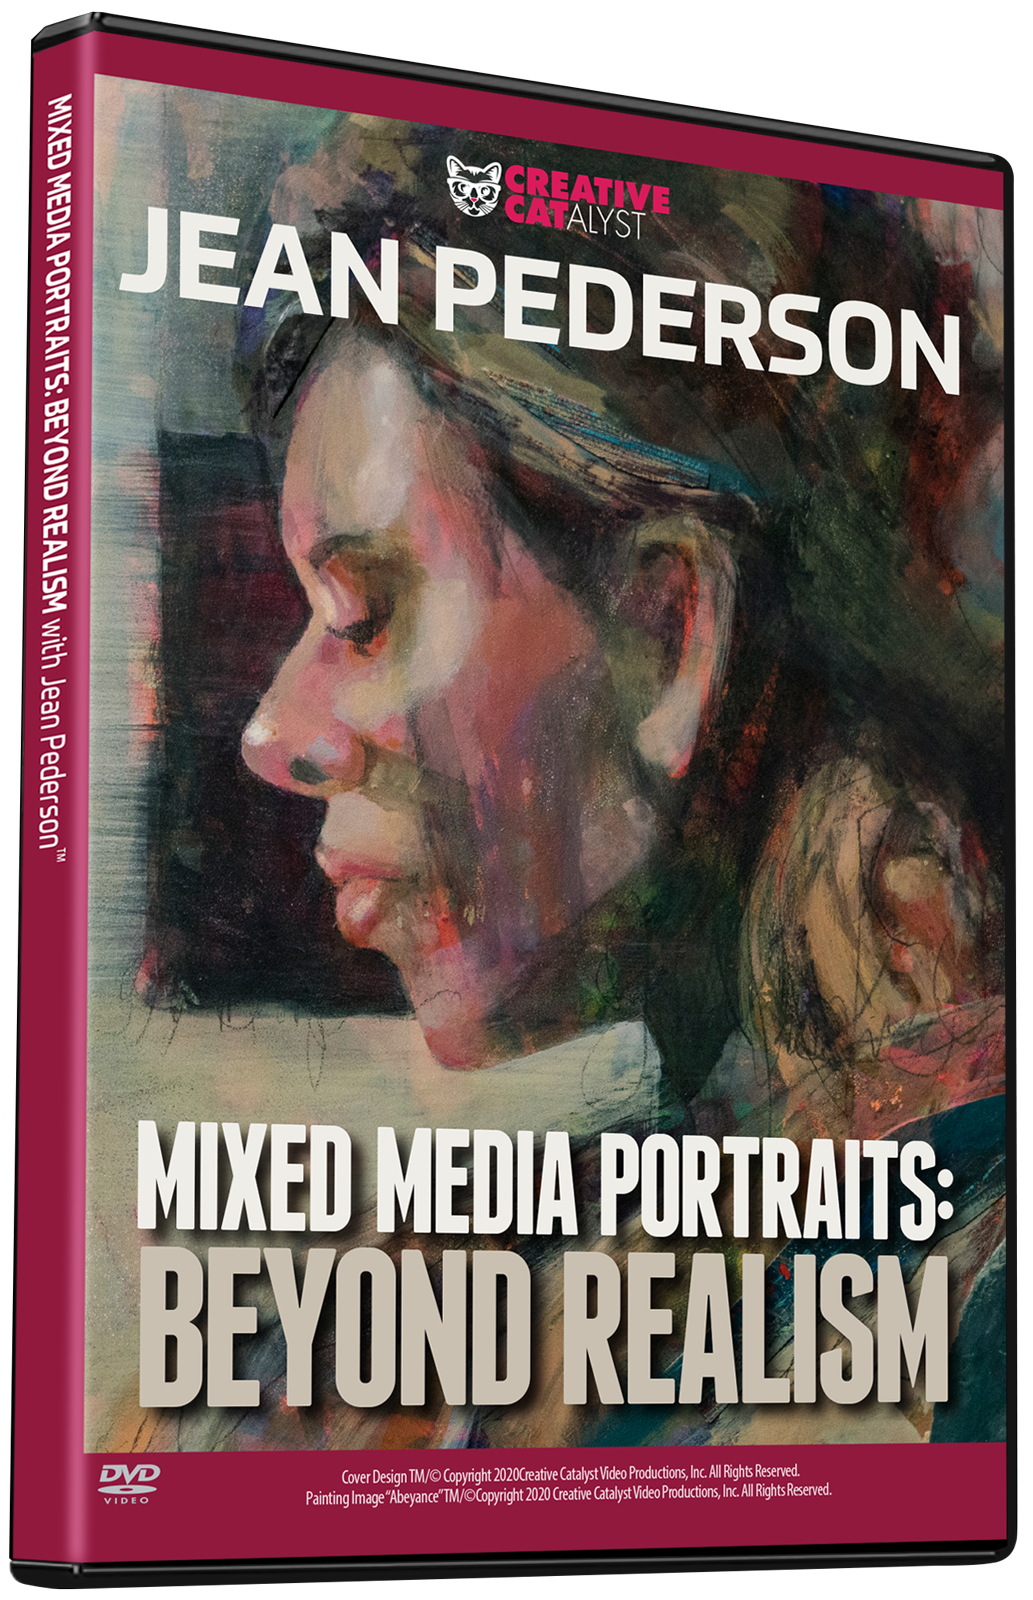 Jean Pederson: Mixed Media Portraits: Beyond Realism